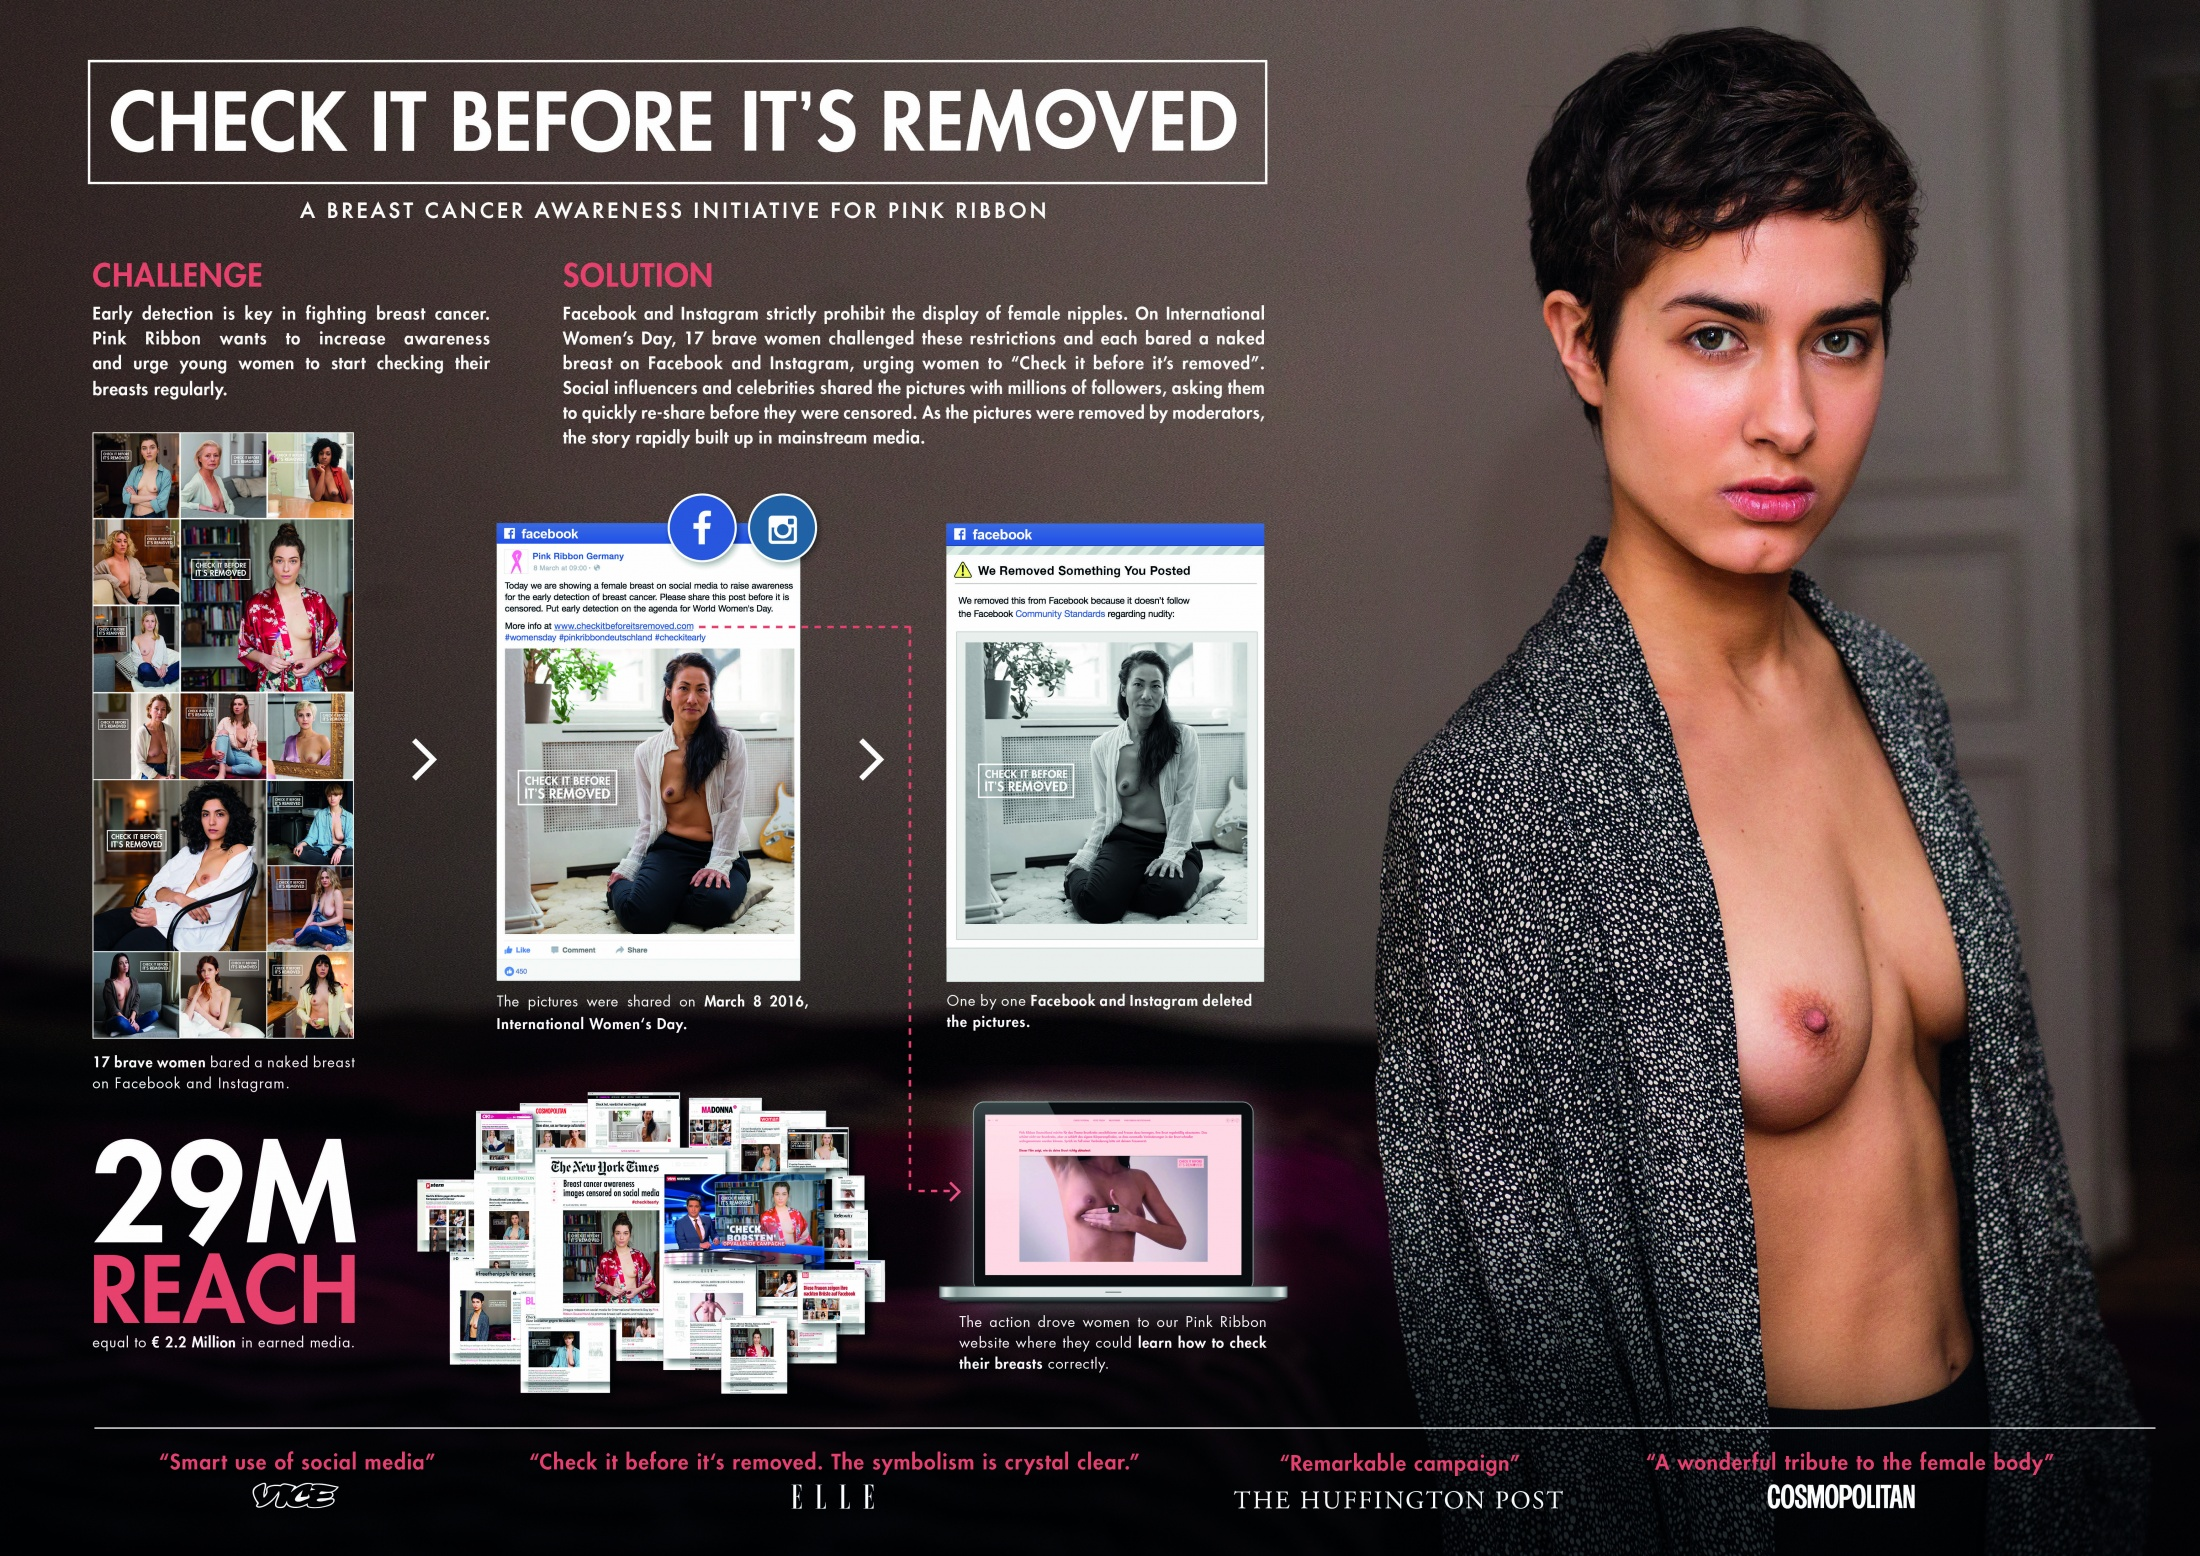 Image Media for Check it before it's removed: Naked breasts on Facebook against breast cancer.